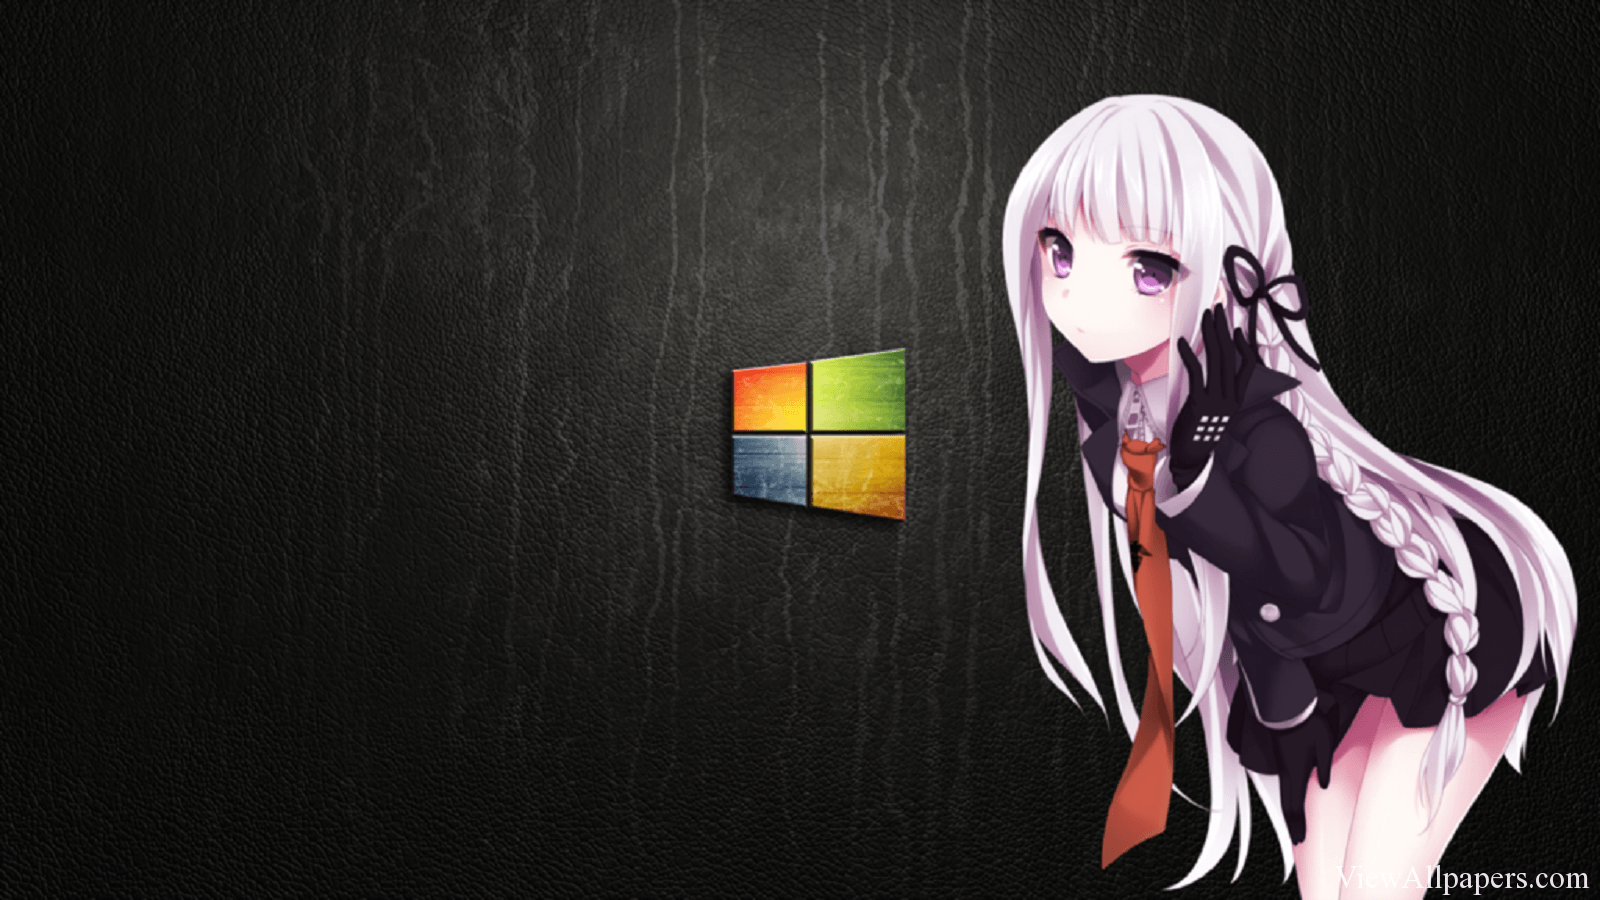 Download 550 Wallpaper Anime Hd Laptop Gratis Terbaik